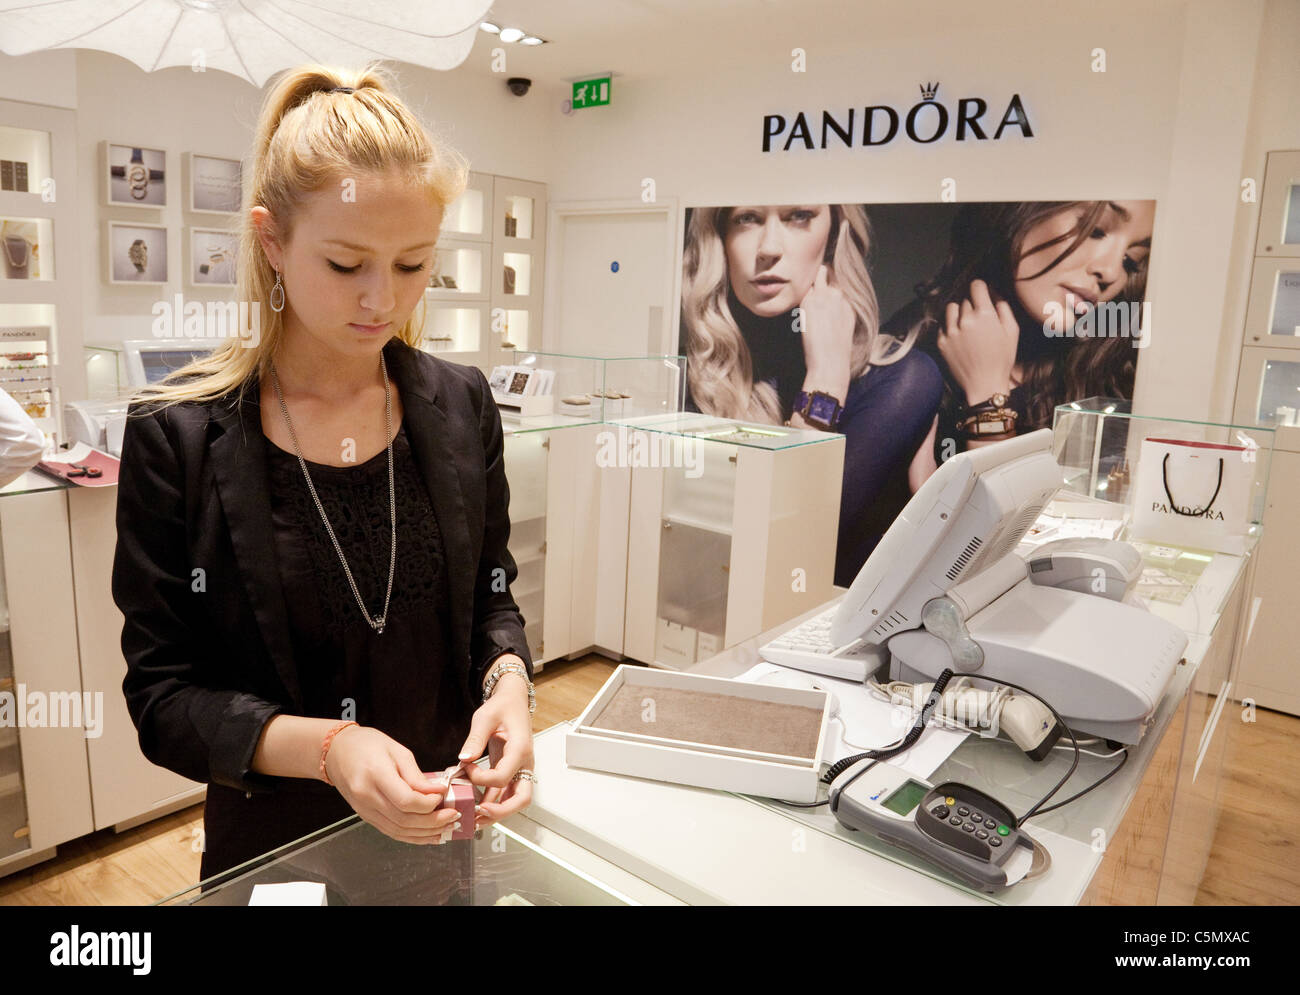 A member of staff at Pandora jewellers wrapping a piece of jewellery, Pandora, Covent Garden, London UK - Stock Image